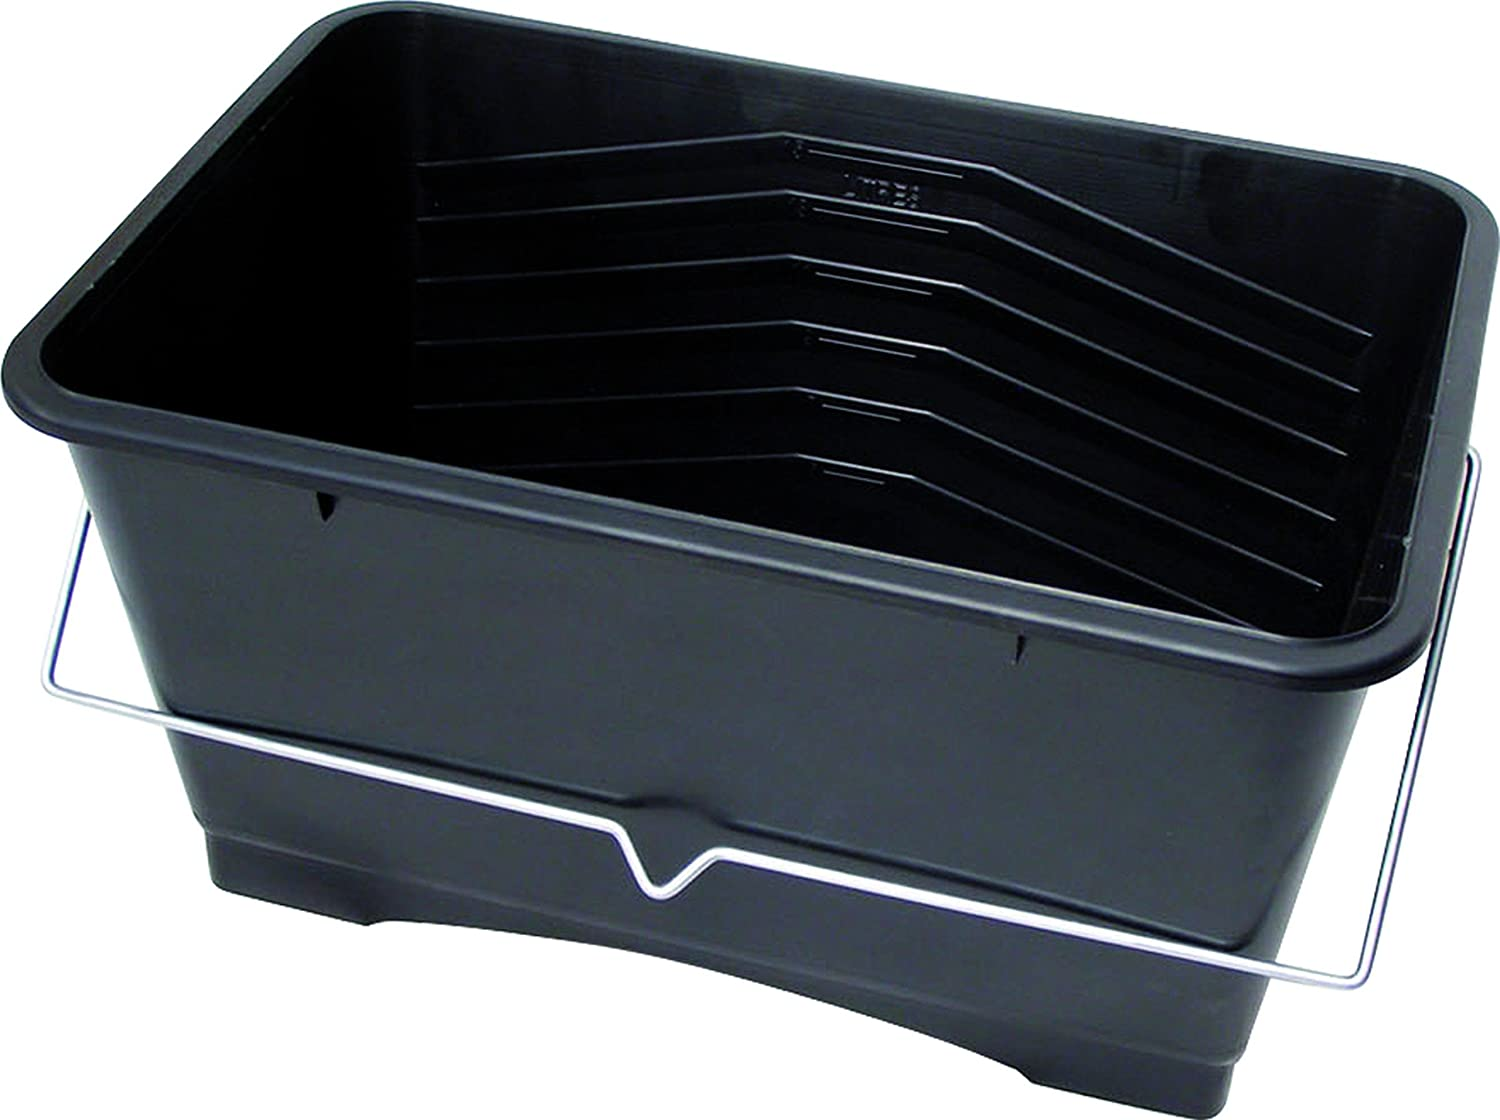 Specialist S15 Paint Scuttle - Black